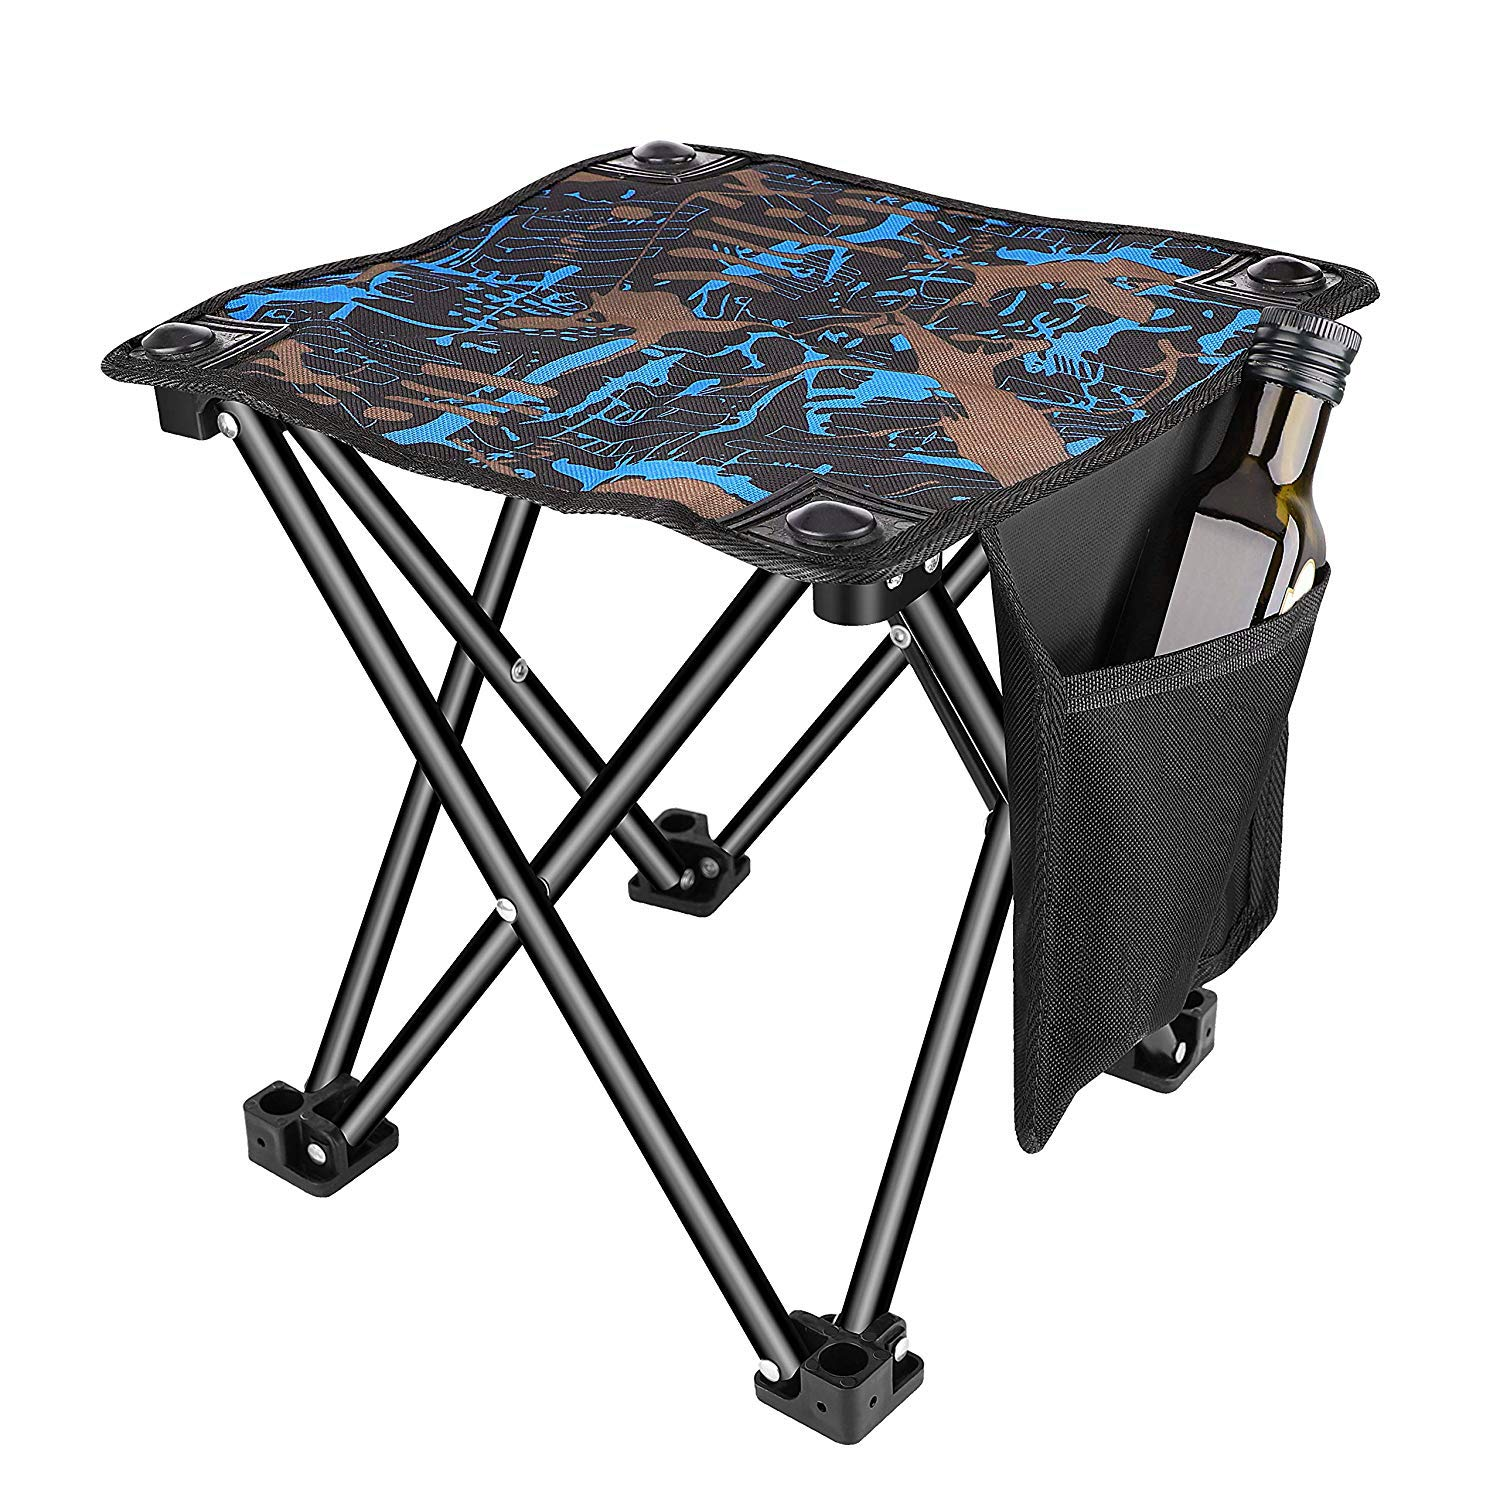 Unihoh Small Folding Camping Stool, Portable Stool for Outdoor Camping Walking Hunting Hiking Fishing Travel,600D Oxford Cloth Slacker Stool with Carry Bag by Unihoh